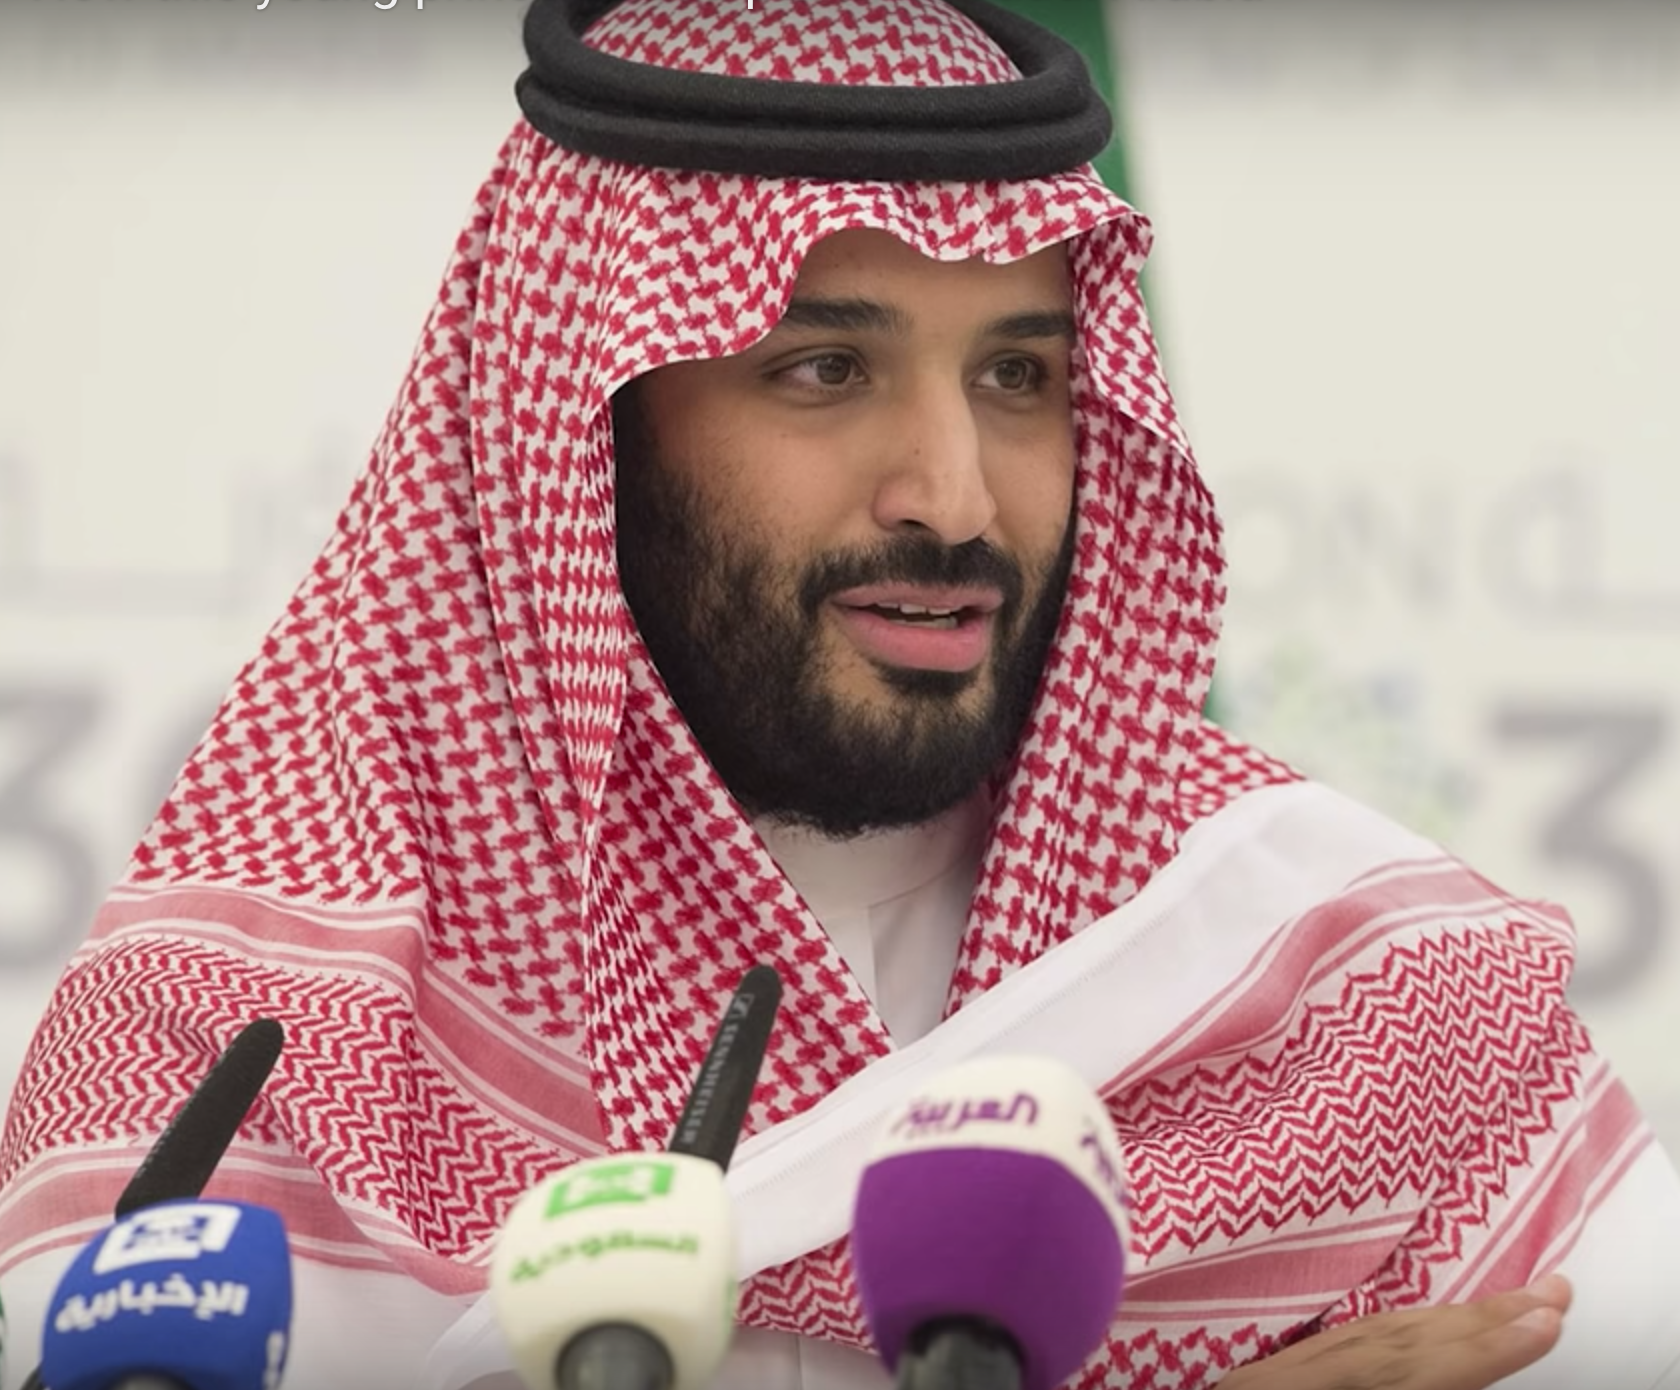 The administration has 120 days to respond to the latest request with a determination of Crown Prince Mohammed bin Salman's culpability in Khashoggi's death. (Image: YouTube/Screenshot)